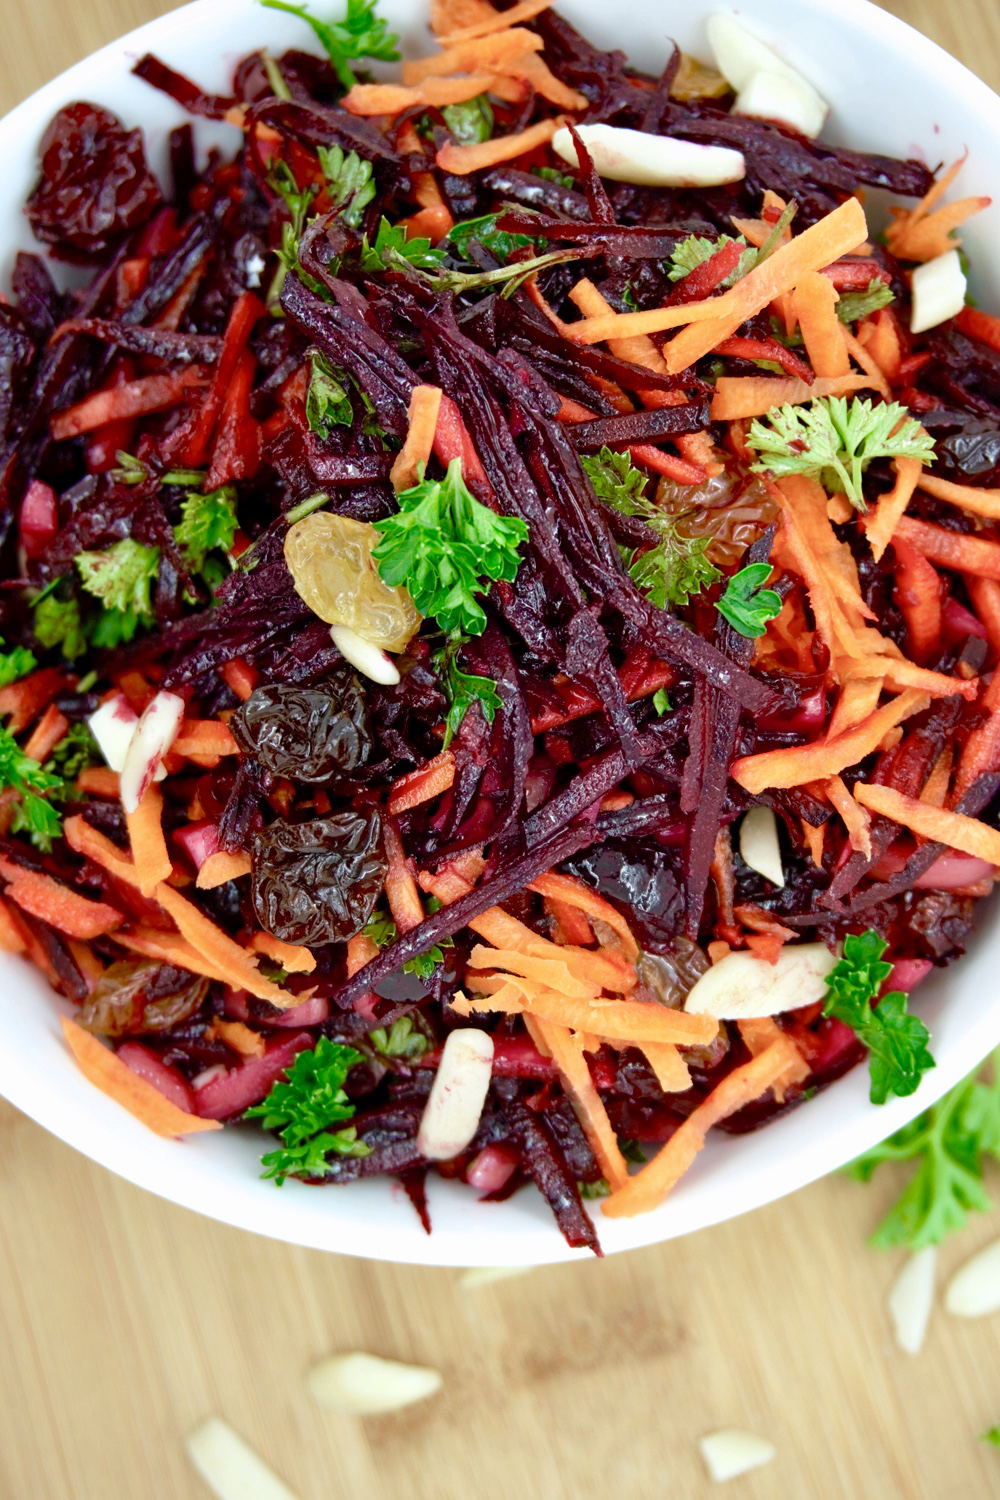 Beet and Carrot Raw Slaw Salad Vegan